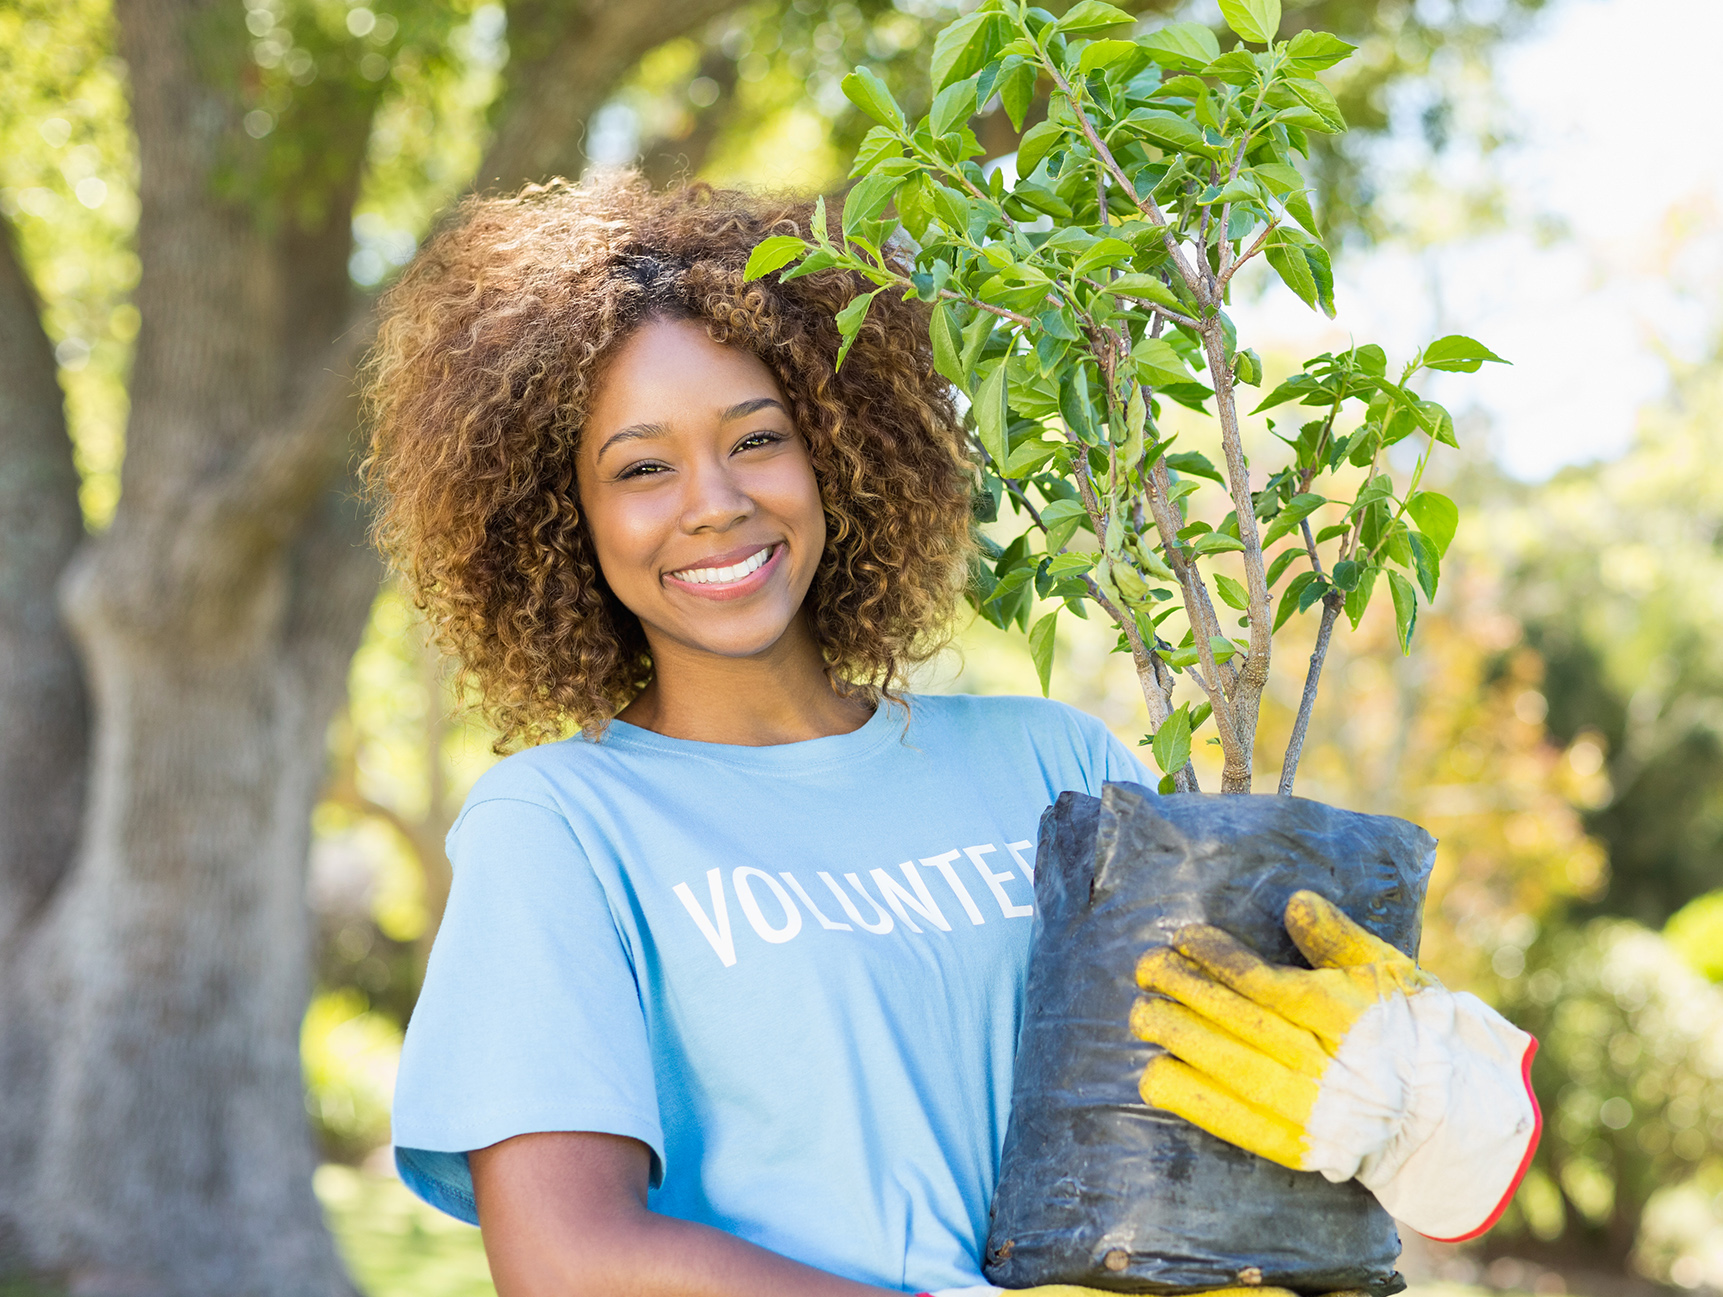 women volunteering holding small tree